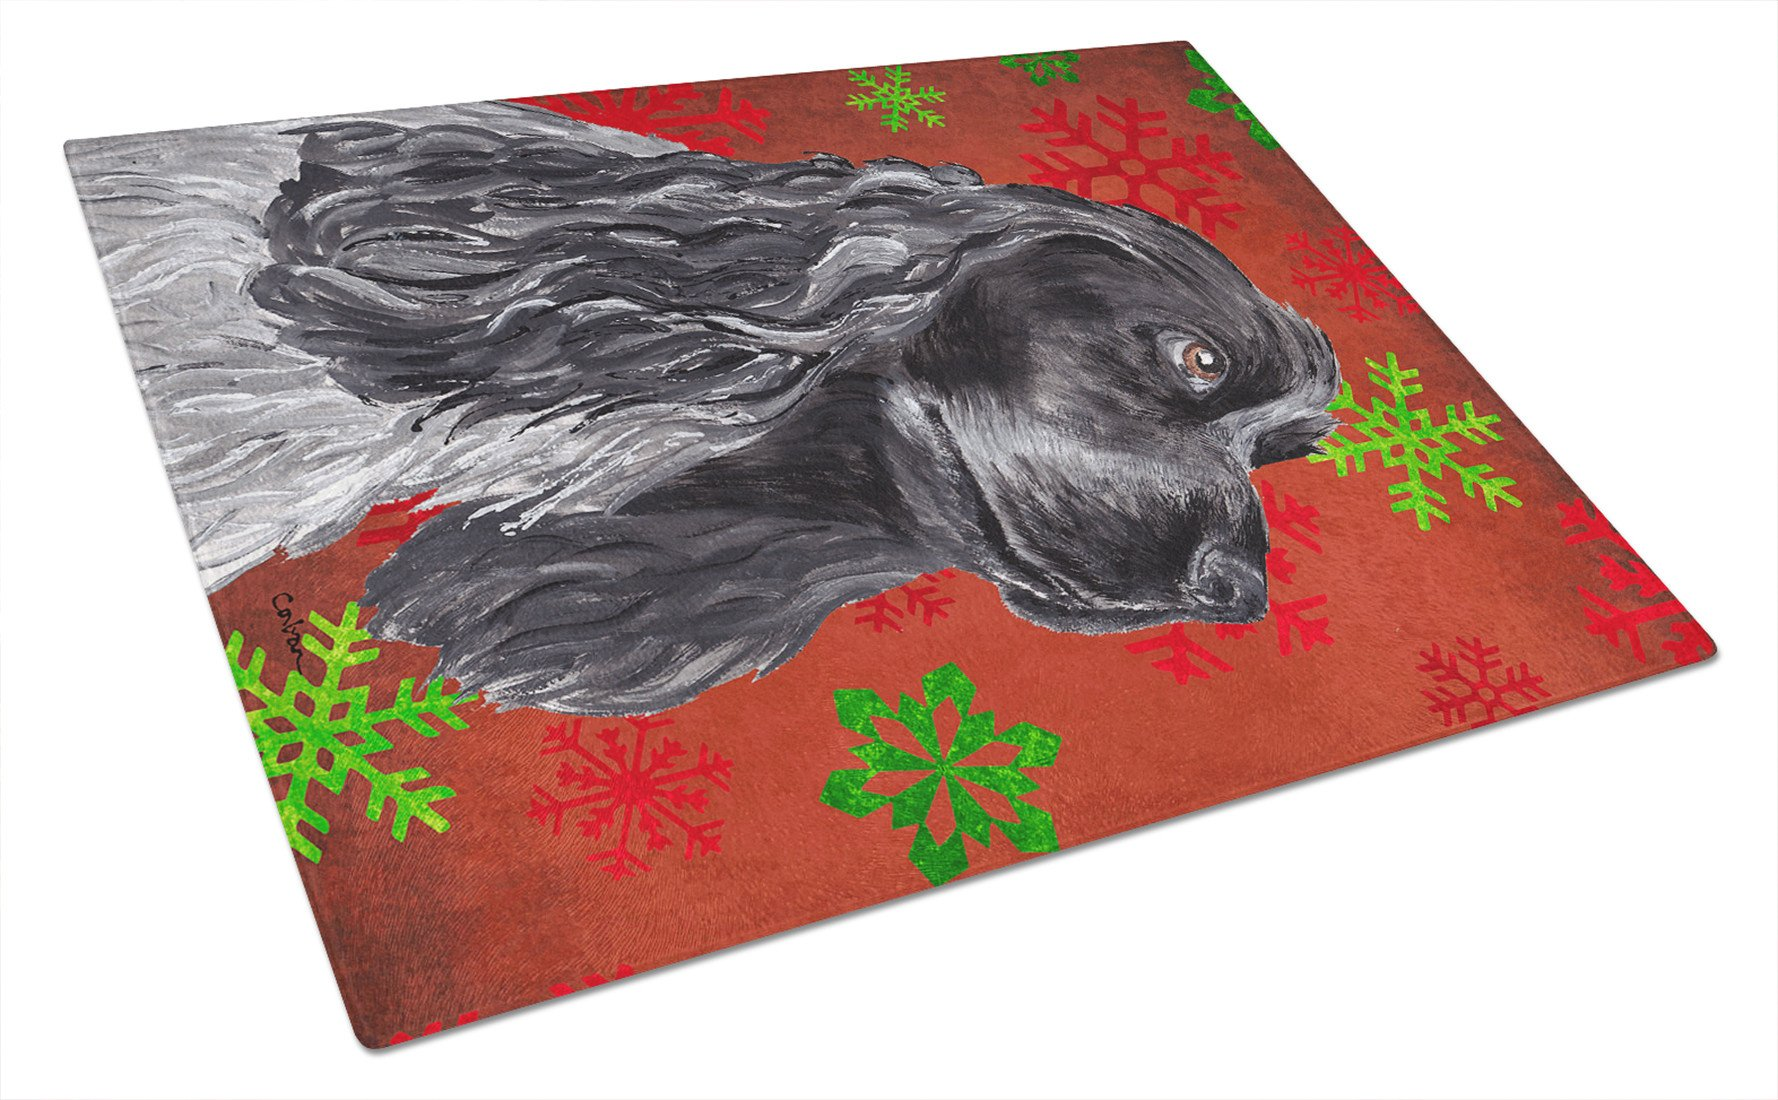 Cocker Spaniel Red Snowflake Christmas Glass Cutting Board Large by Caroline's Treasures